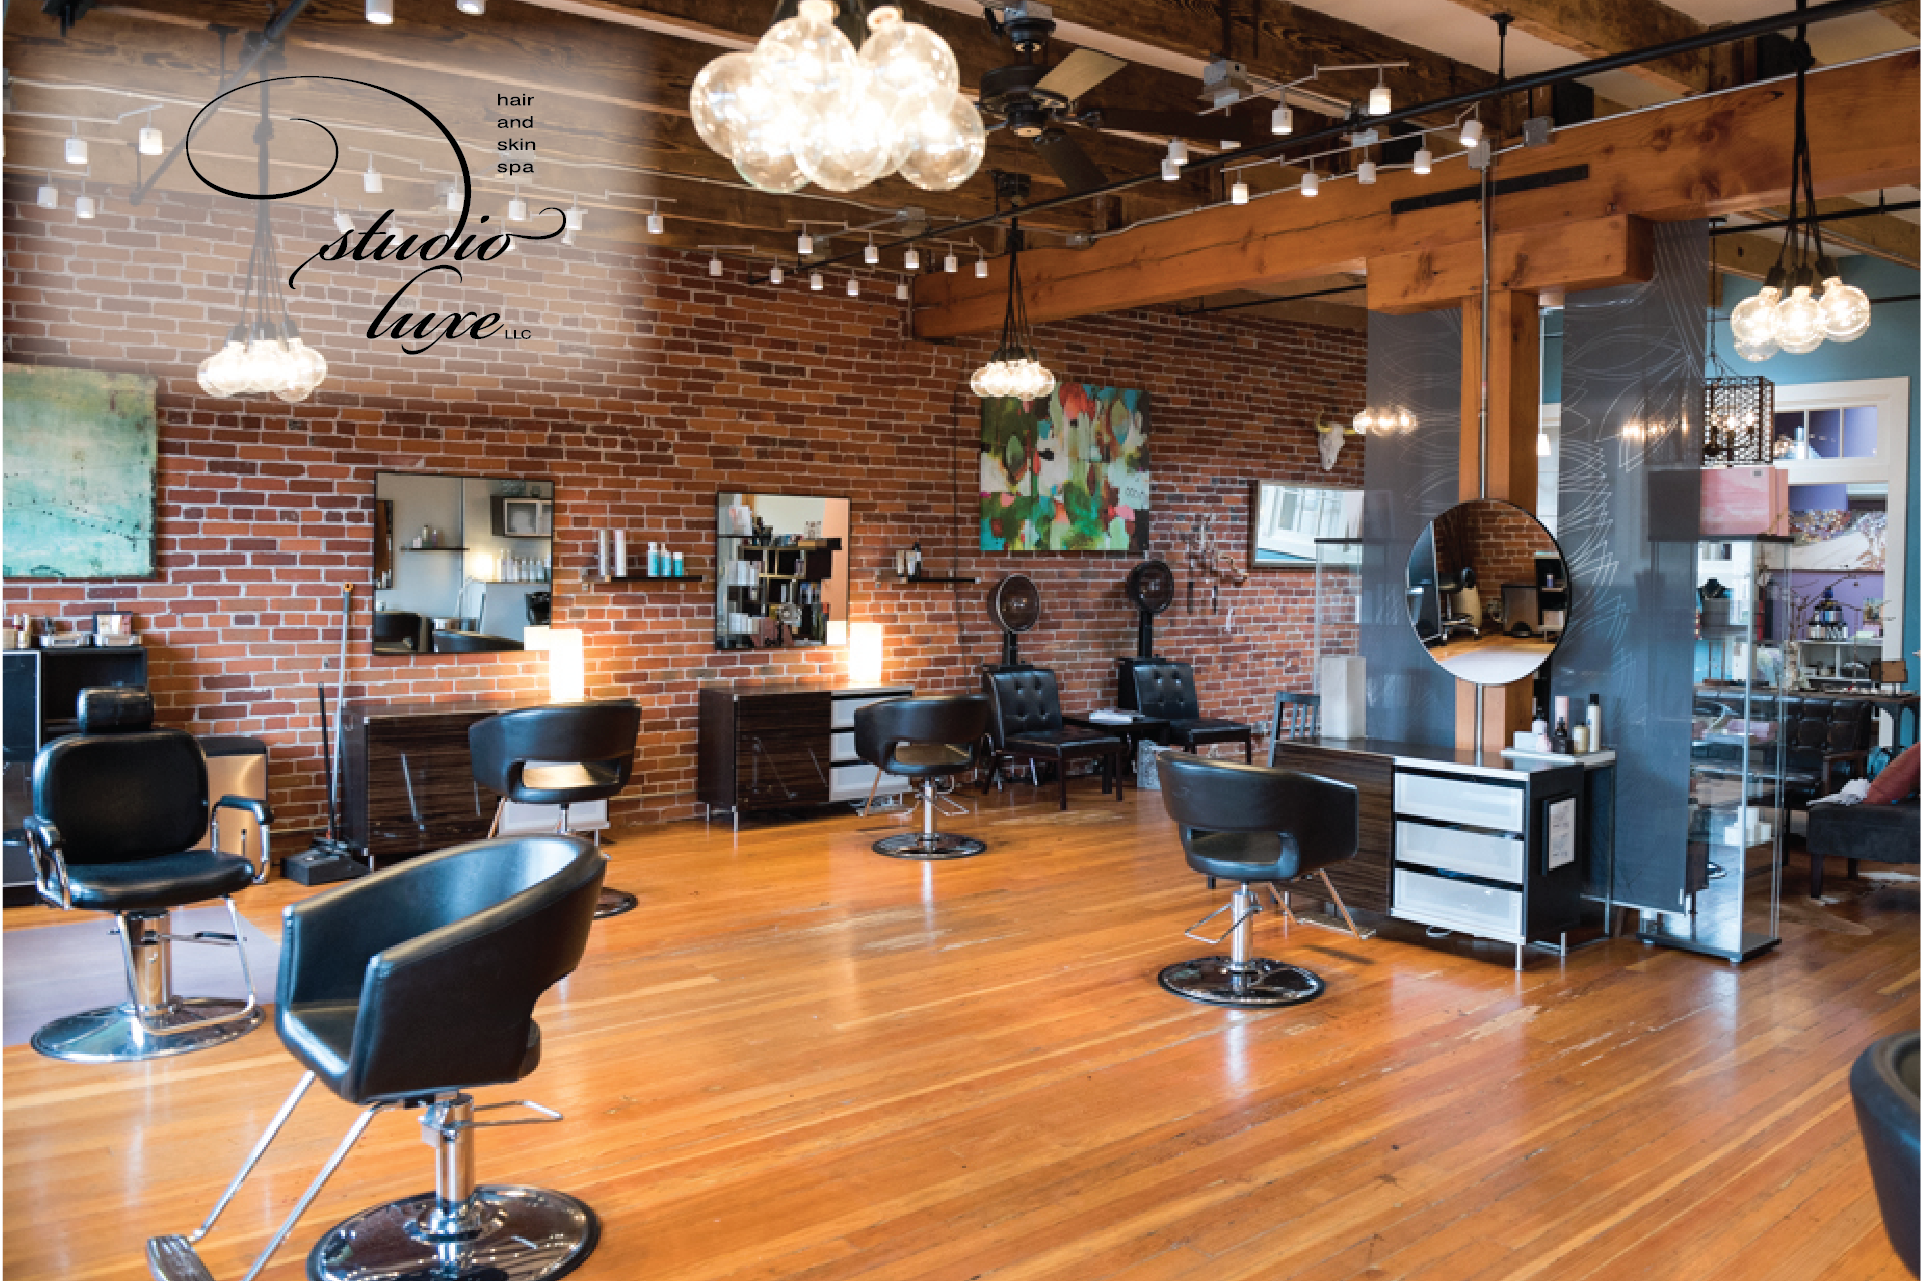 Studio luxe hair skin spa in portland or vagaro for A luxe beauty salon